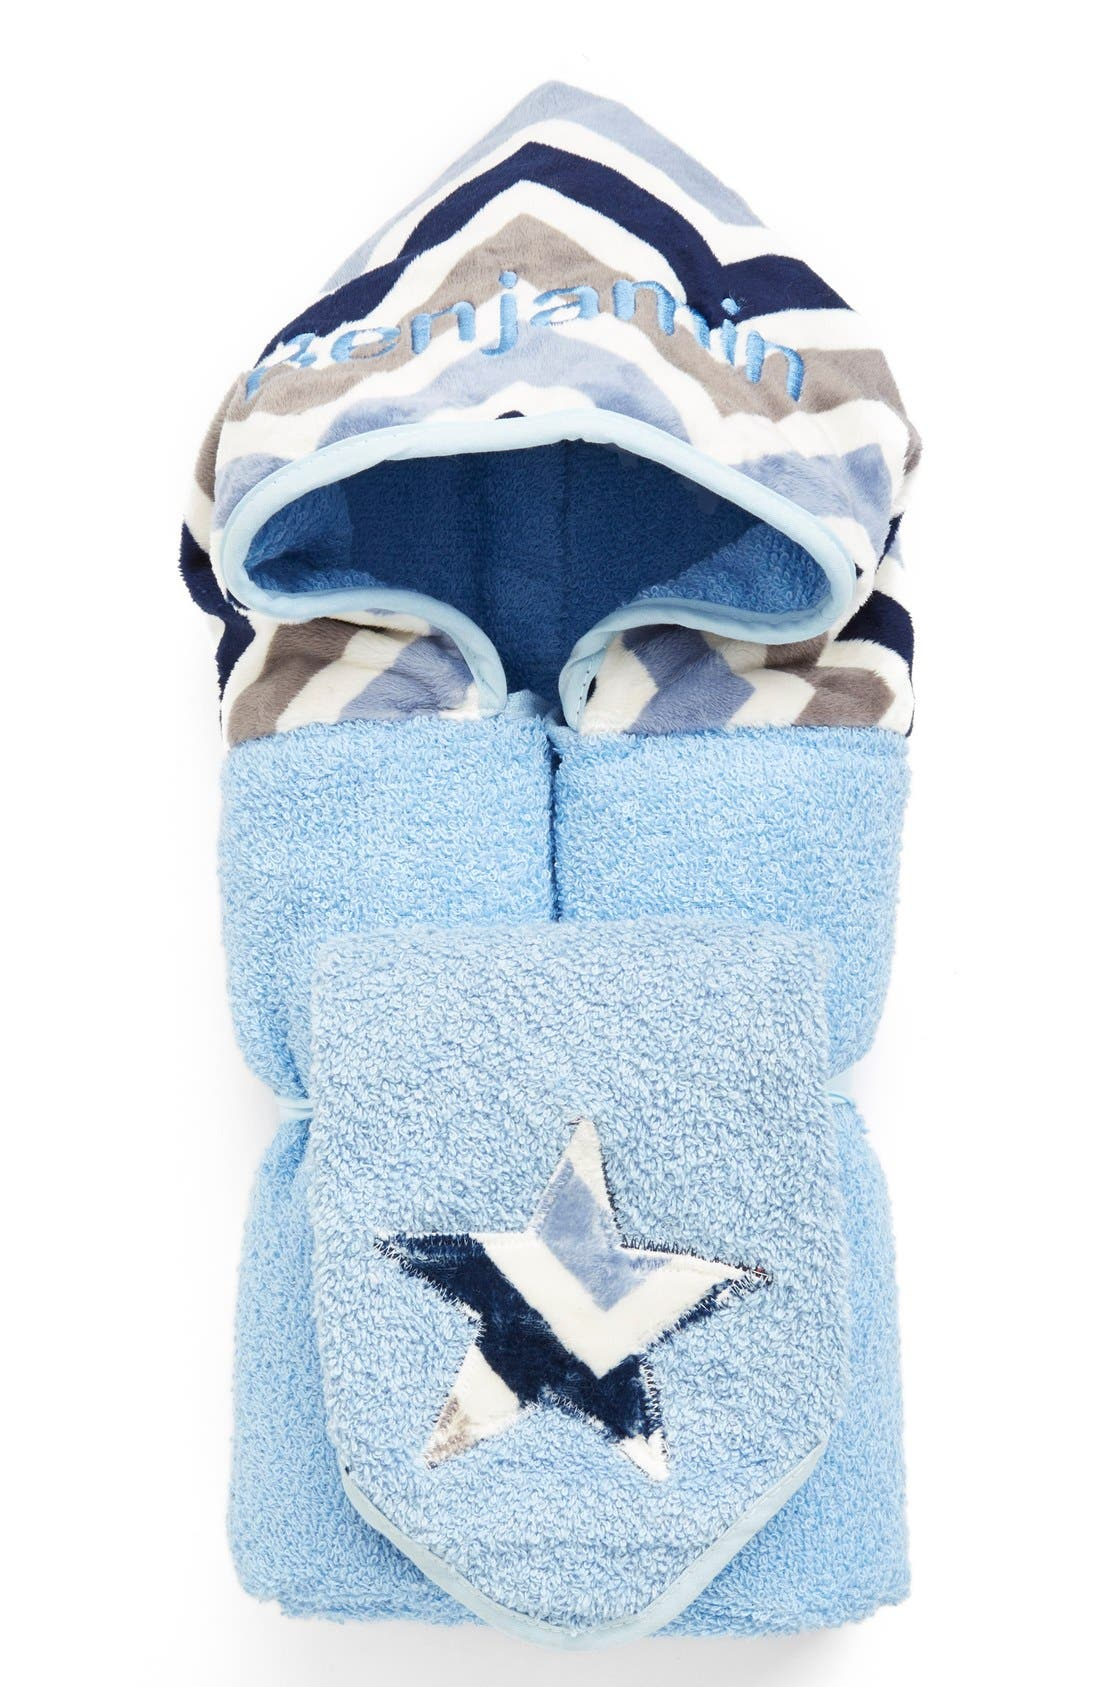 BIBZ N THINGZ Personalized Hooded Towel